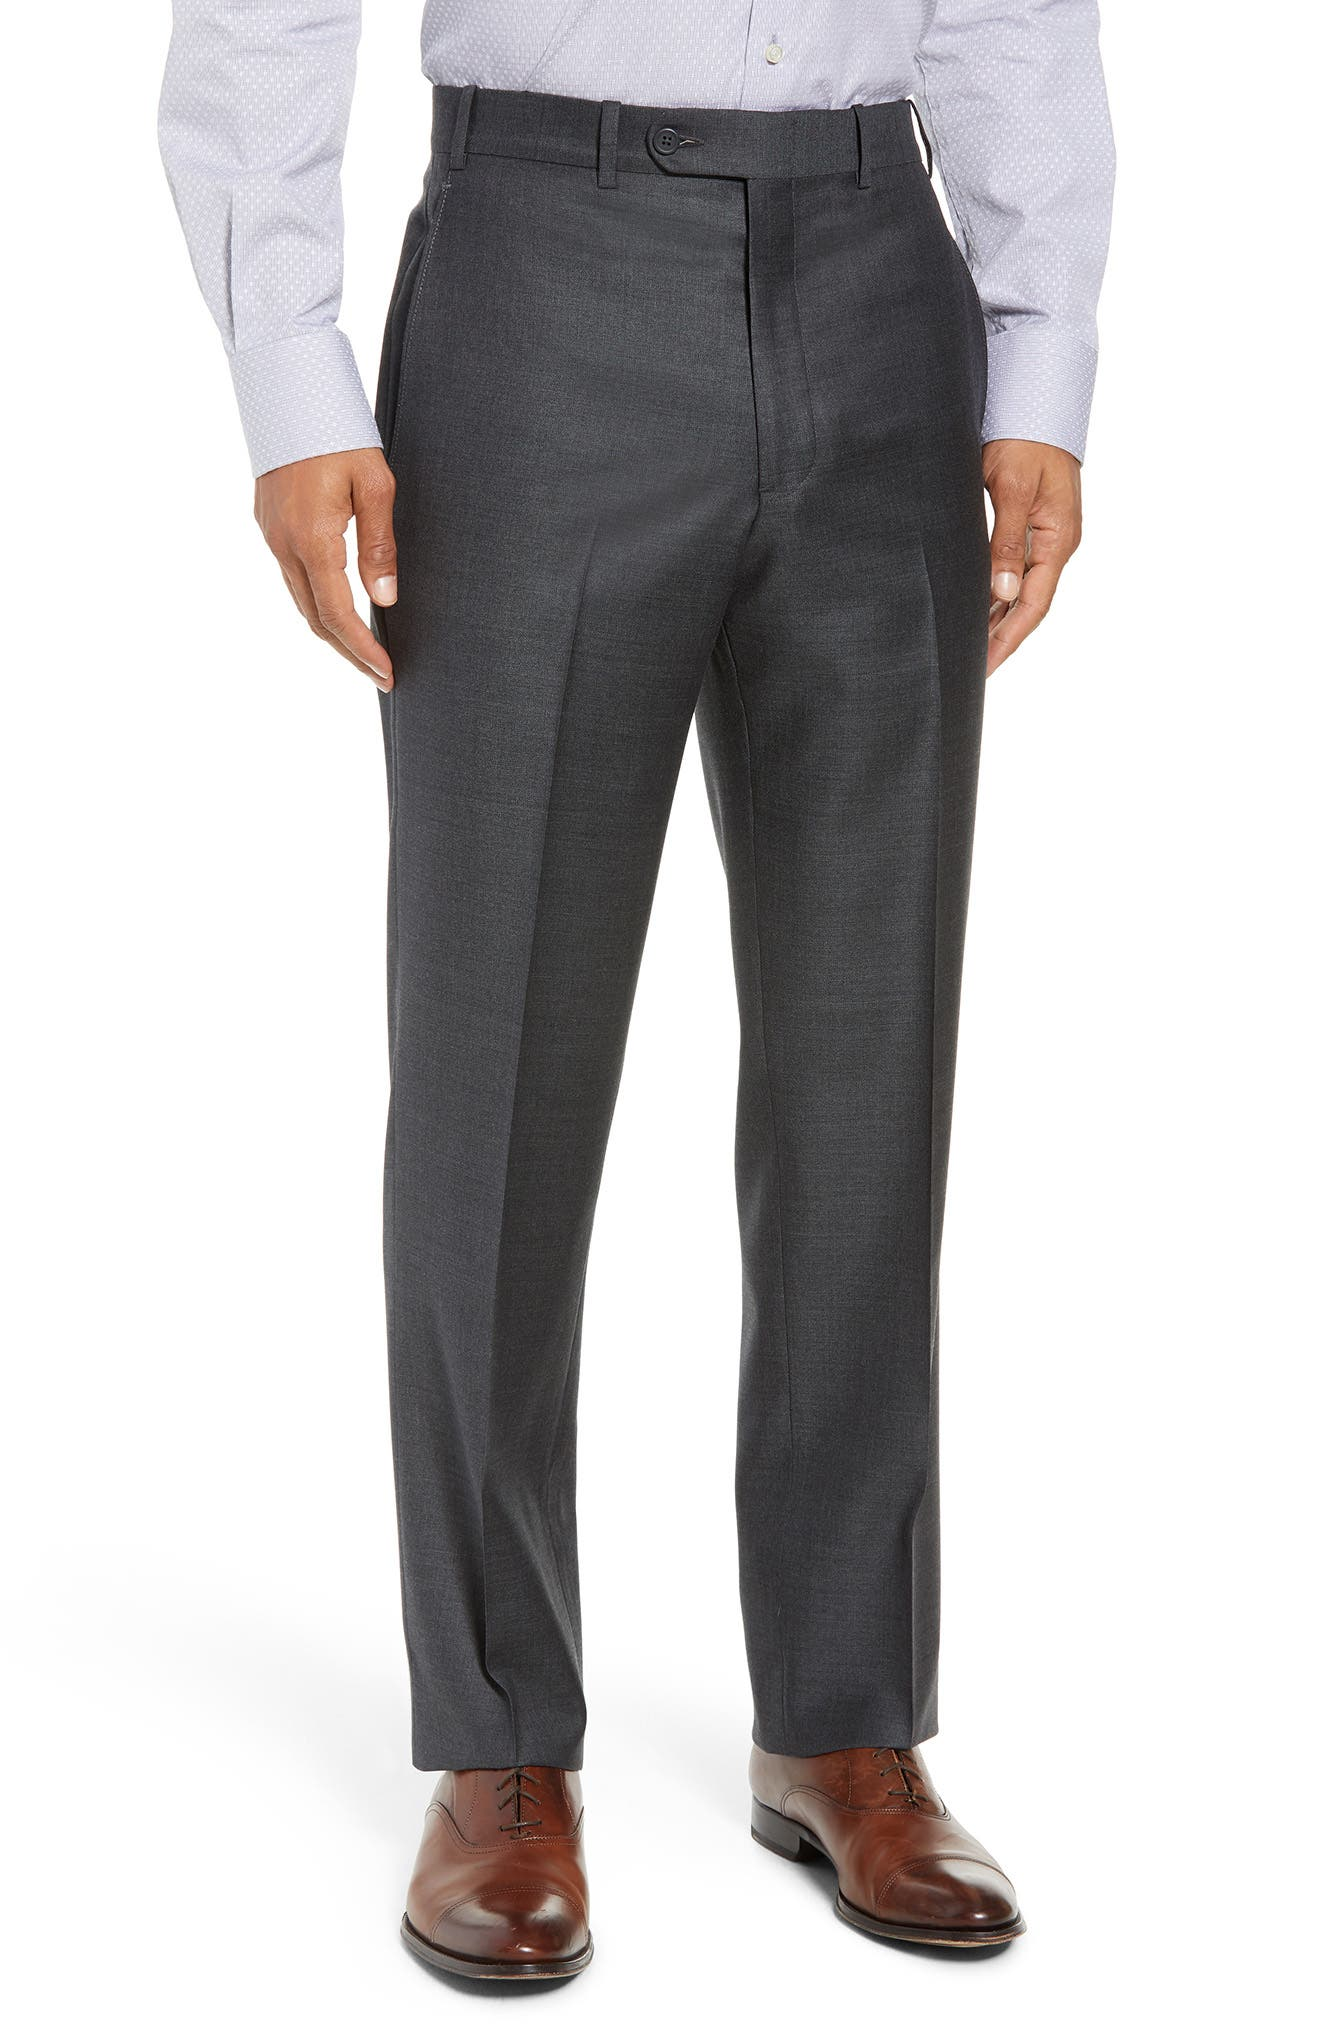 Torino Flat Front Solid Wool Trousers,                         Main,                         color, Charcoal